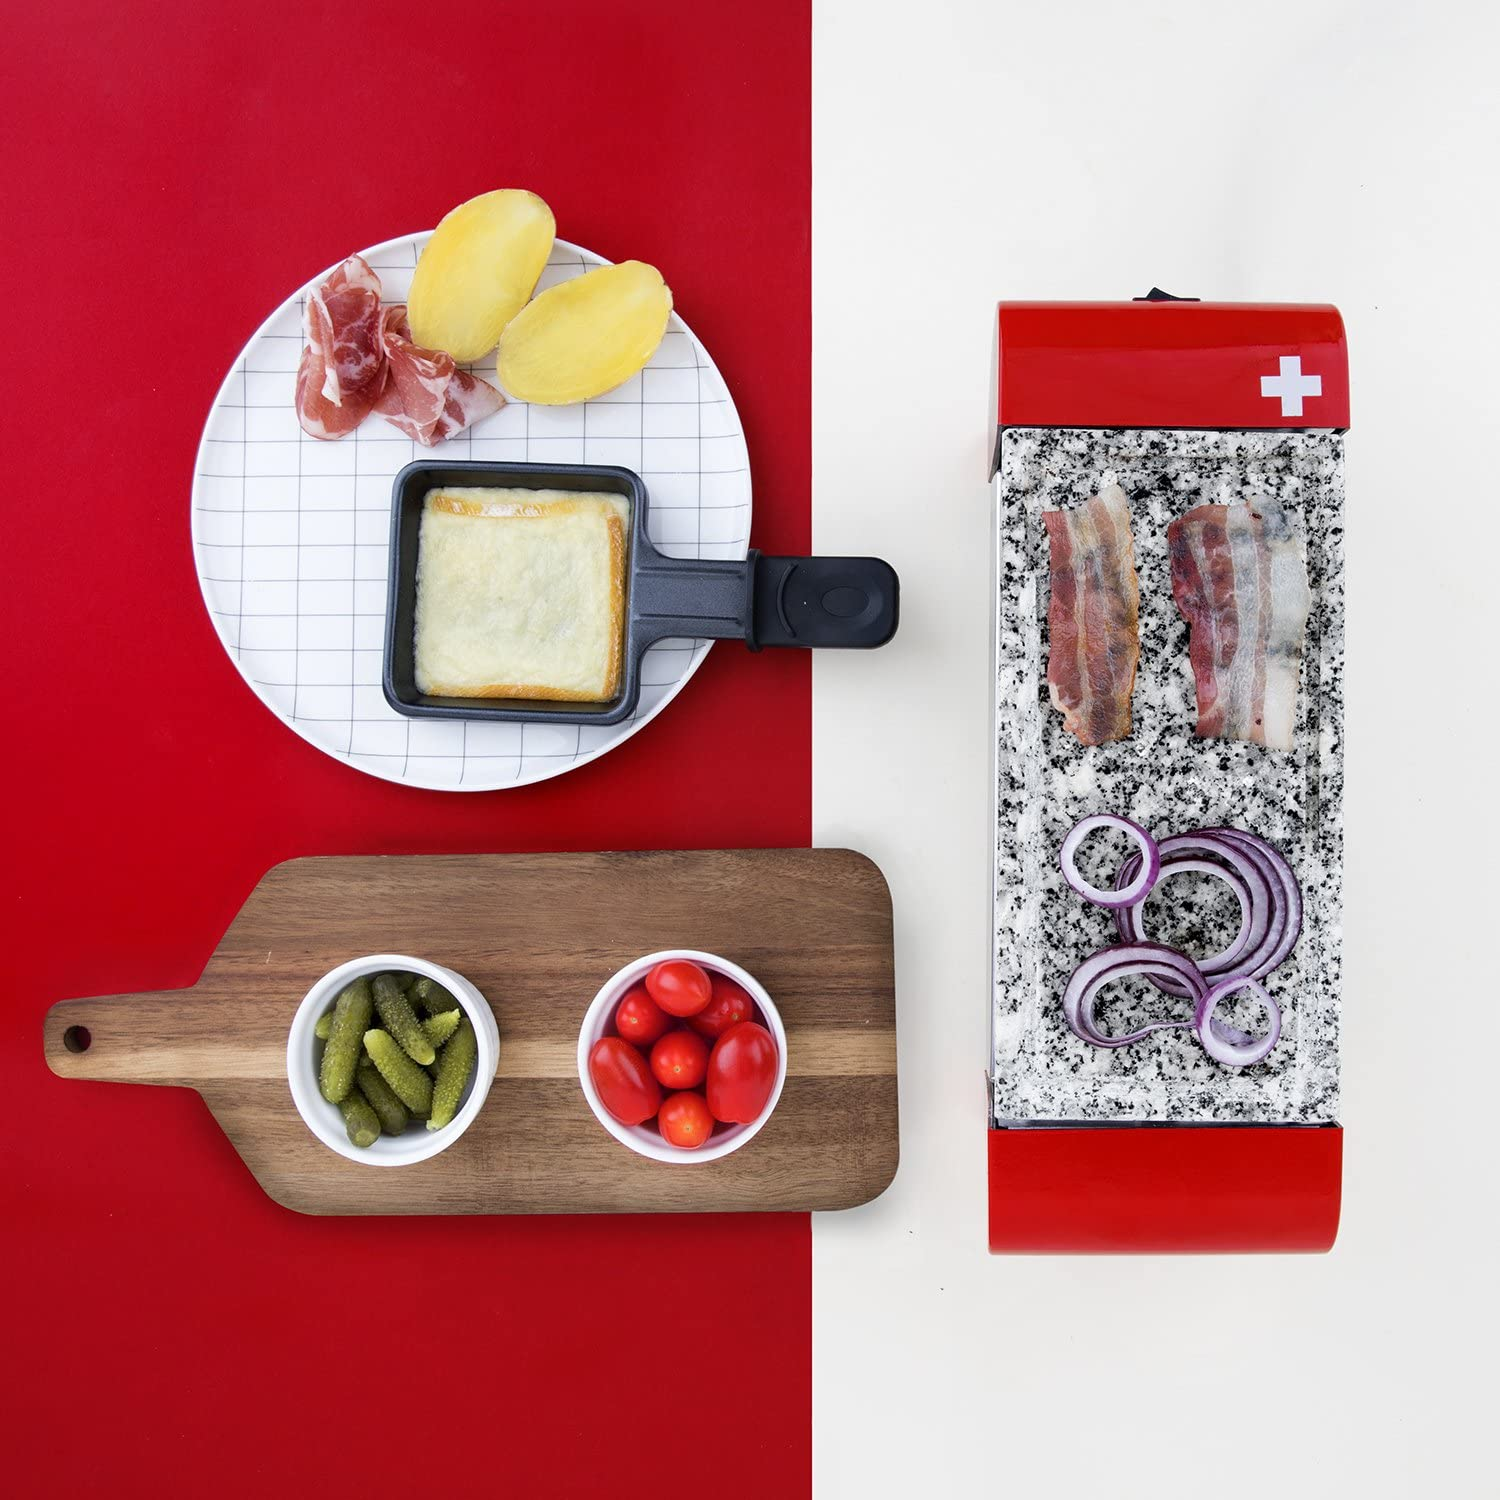 H.Koenig Raclette Grill 2-in-1 Stone Grill Rural Red RP2 2 Person